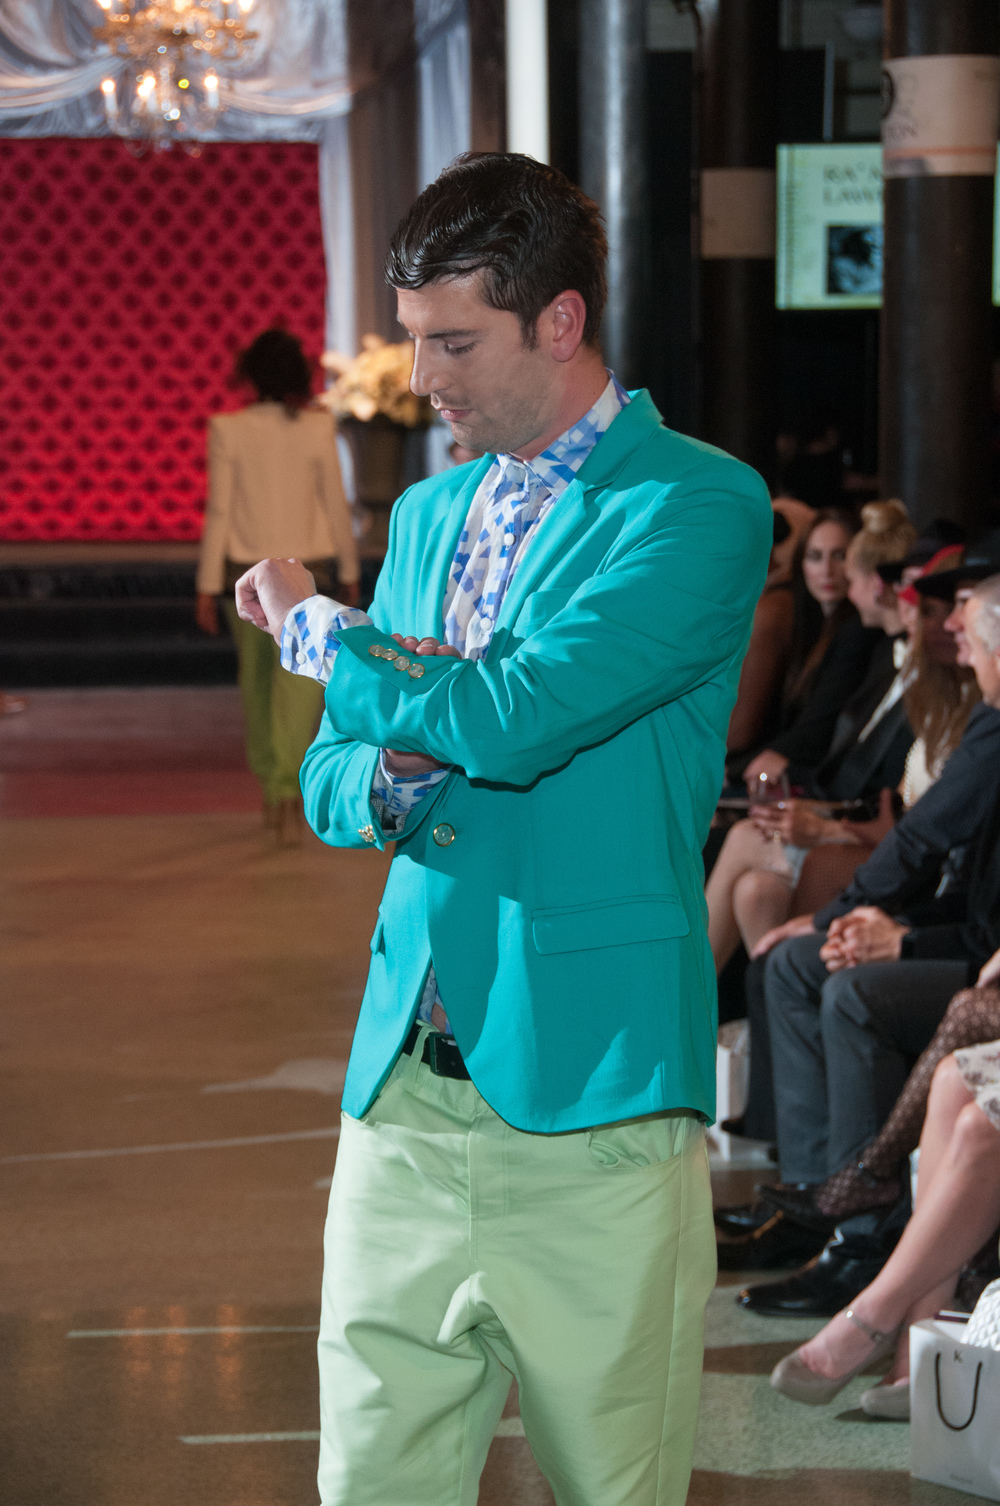 Run_Up_Runway_Featuring_Lyle_Husar_Designs_Brookfield15.jpg